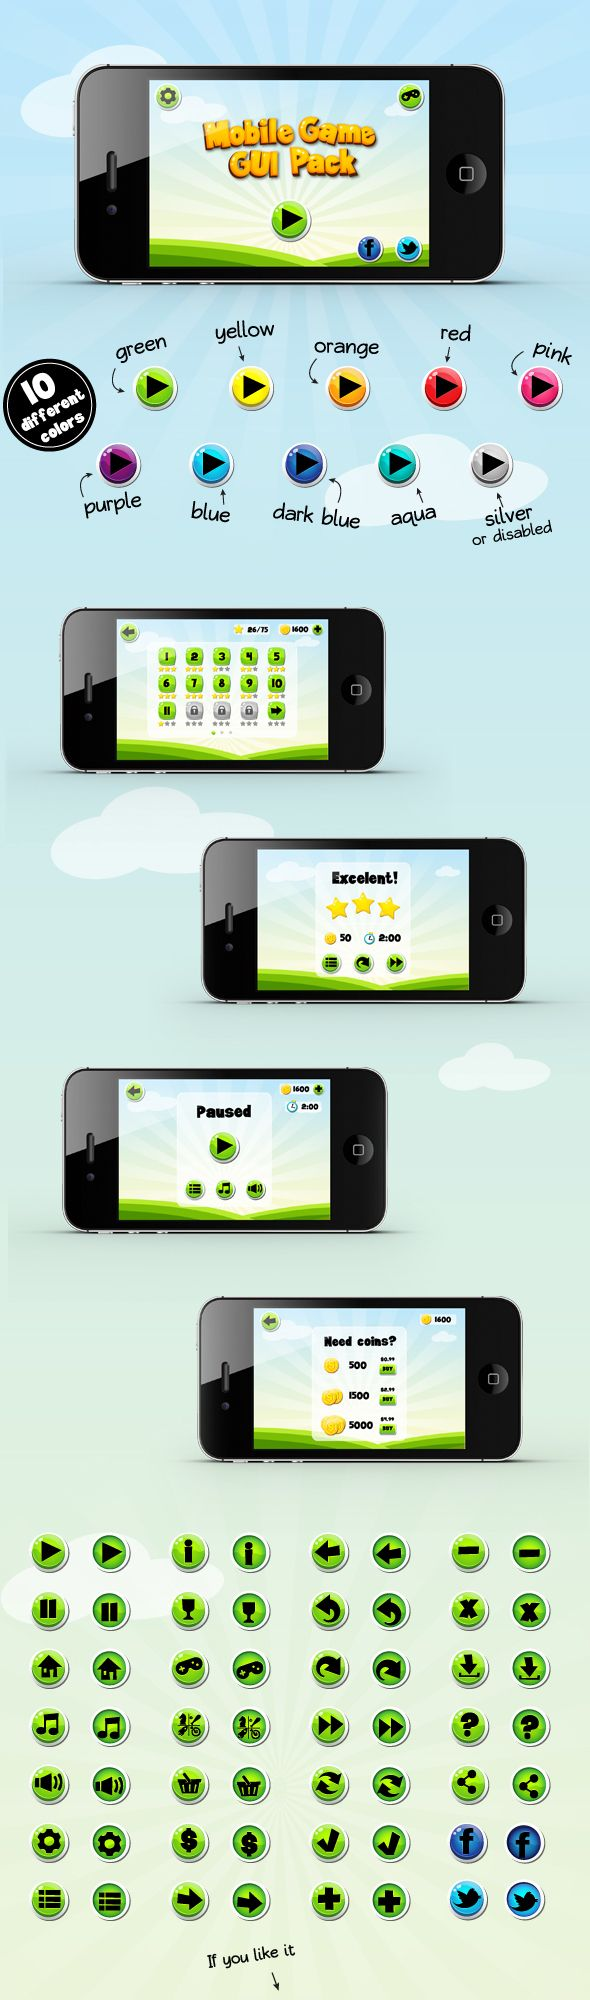 Mobile Game GUI Pack by Malgorzata Lau, via Behance